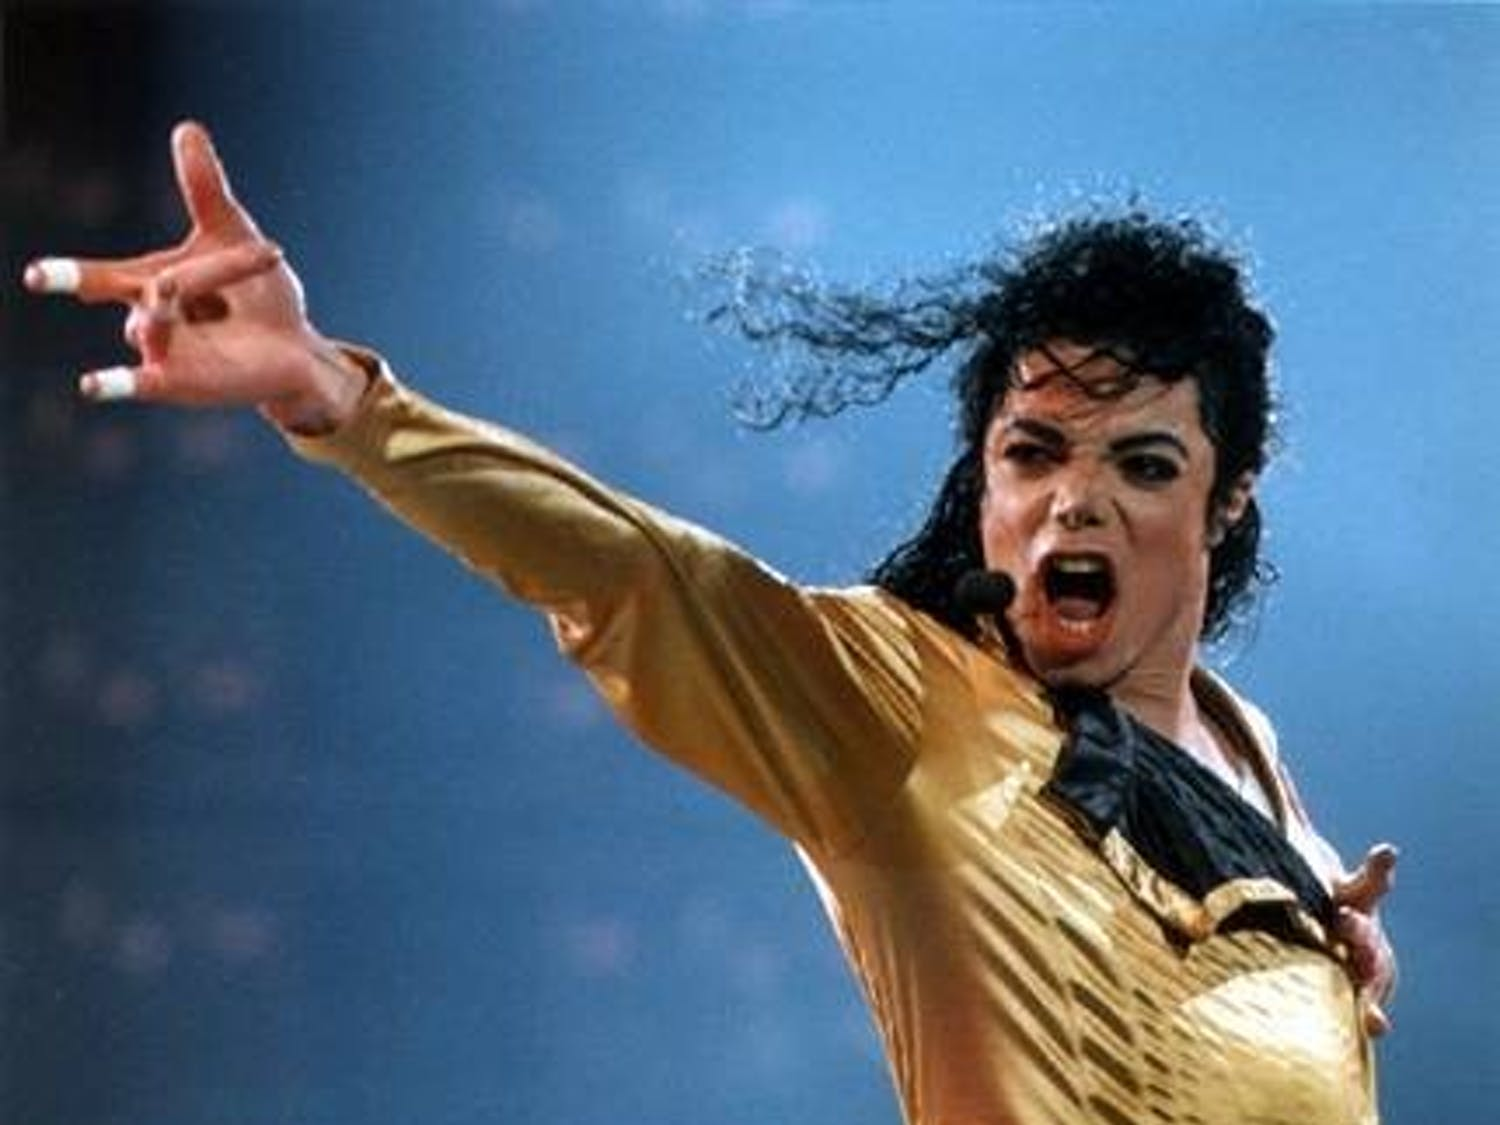 """""""Leaving Neverland"""" pushes back on Michael Jackson's legacy, and seeks to unravel allegations stemming back to the '90s."""